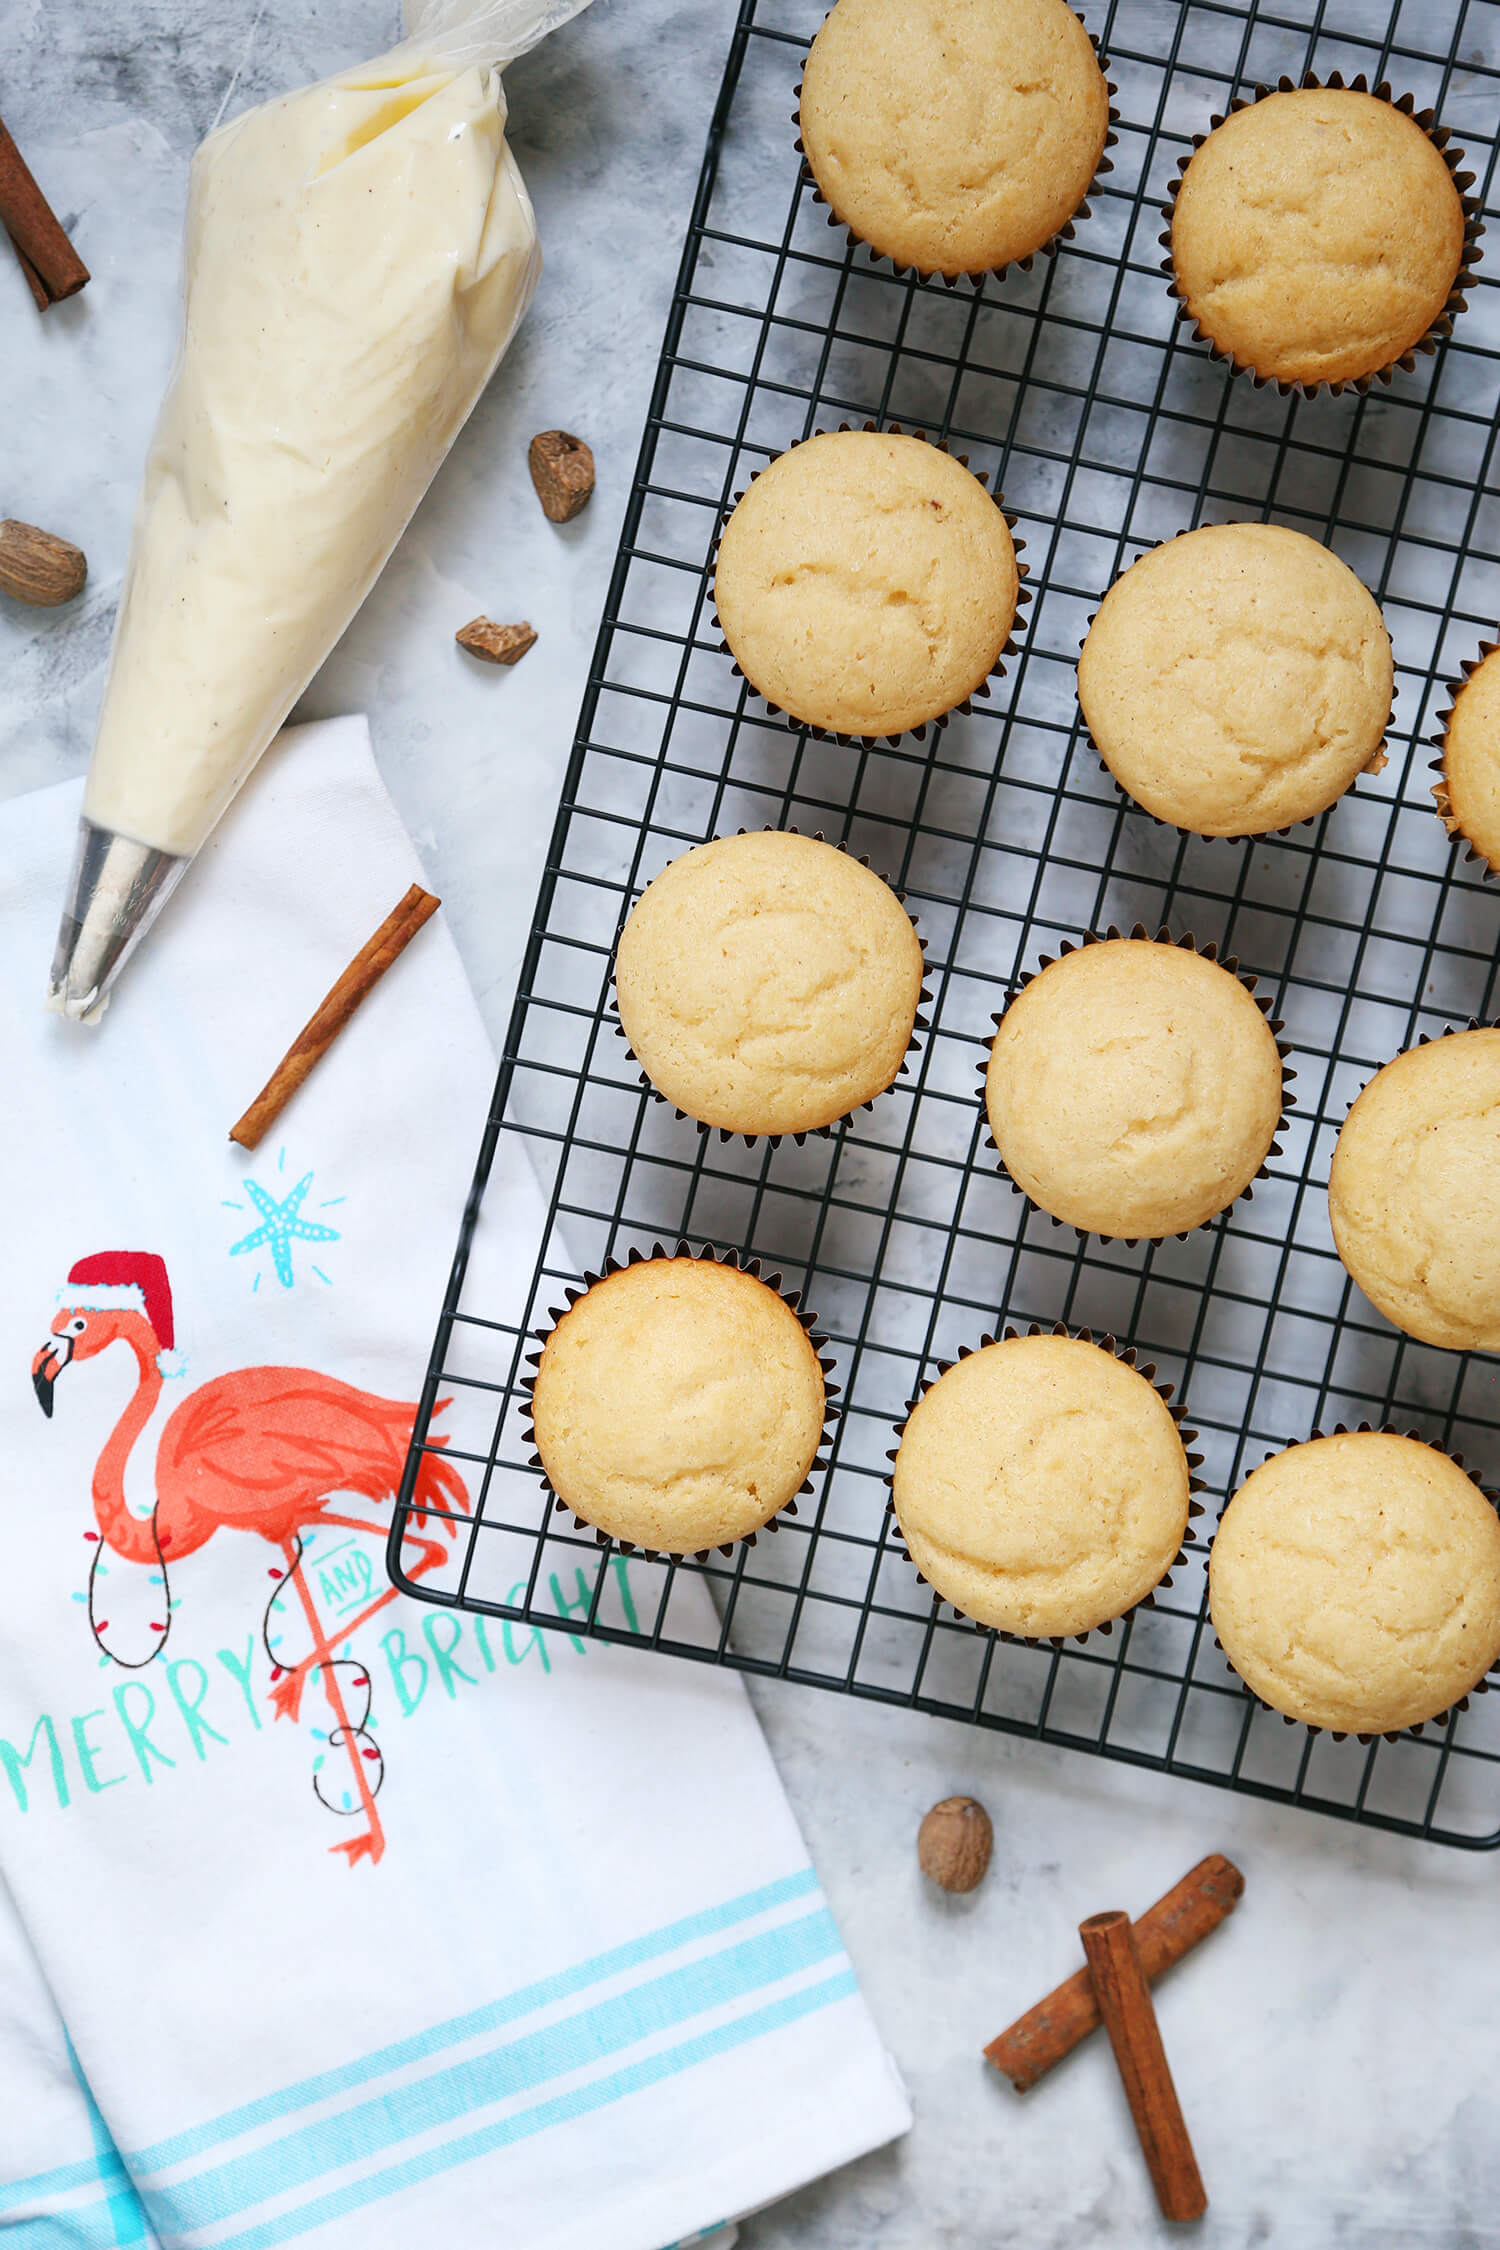 Spiked Eggnog Cupcakes